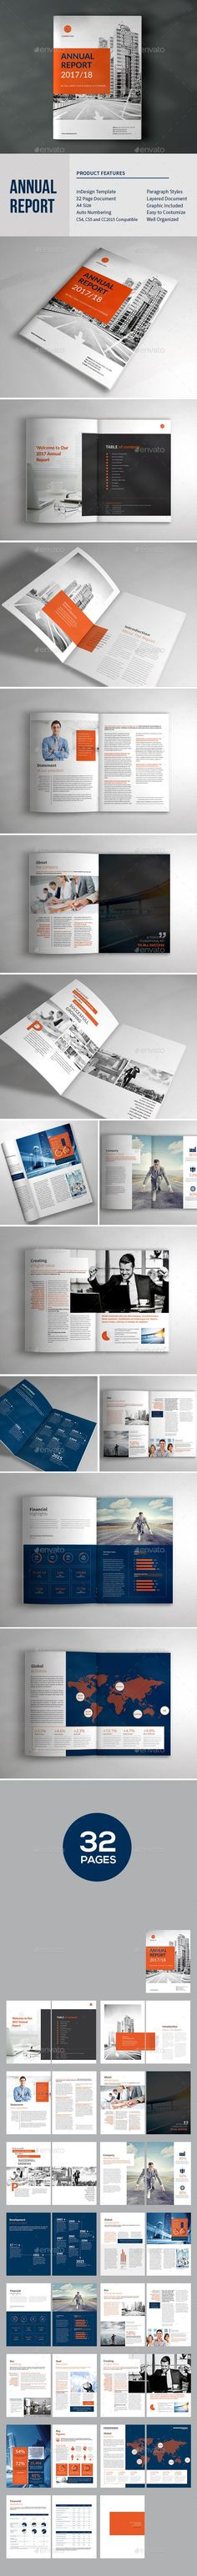 Annual Report Template Annual reports, Template and Brochures - company annual report sample